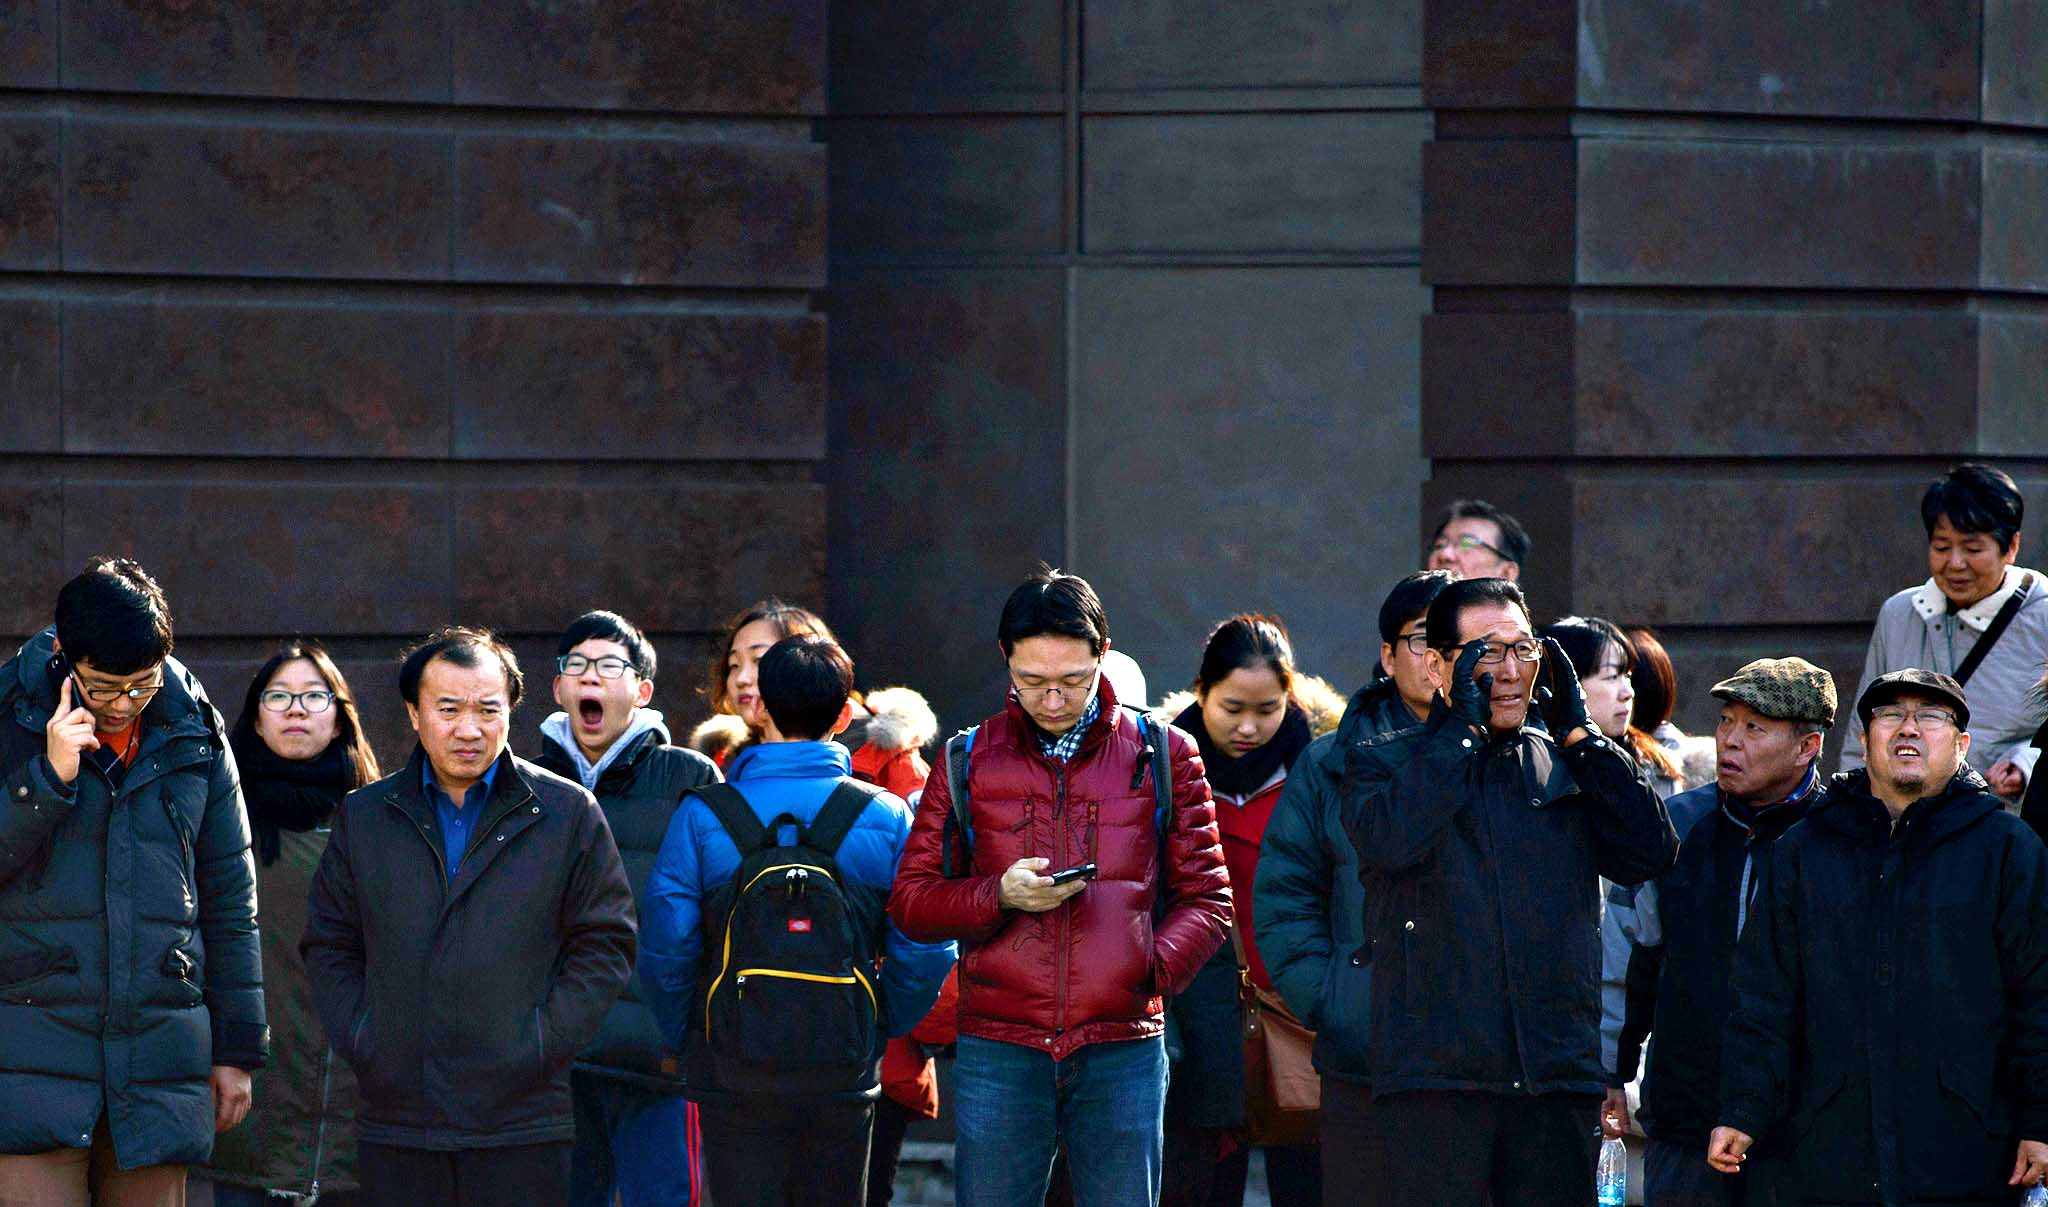 Pedestrians wait to cross a street in Seoul on January 27, 2014. South Korea's economy grew at a slightly slower 0.9 percent in the fourth quarter of last year, as falling construction investments offset a rise in exports, state data showed January 23.